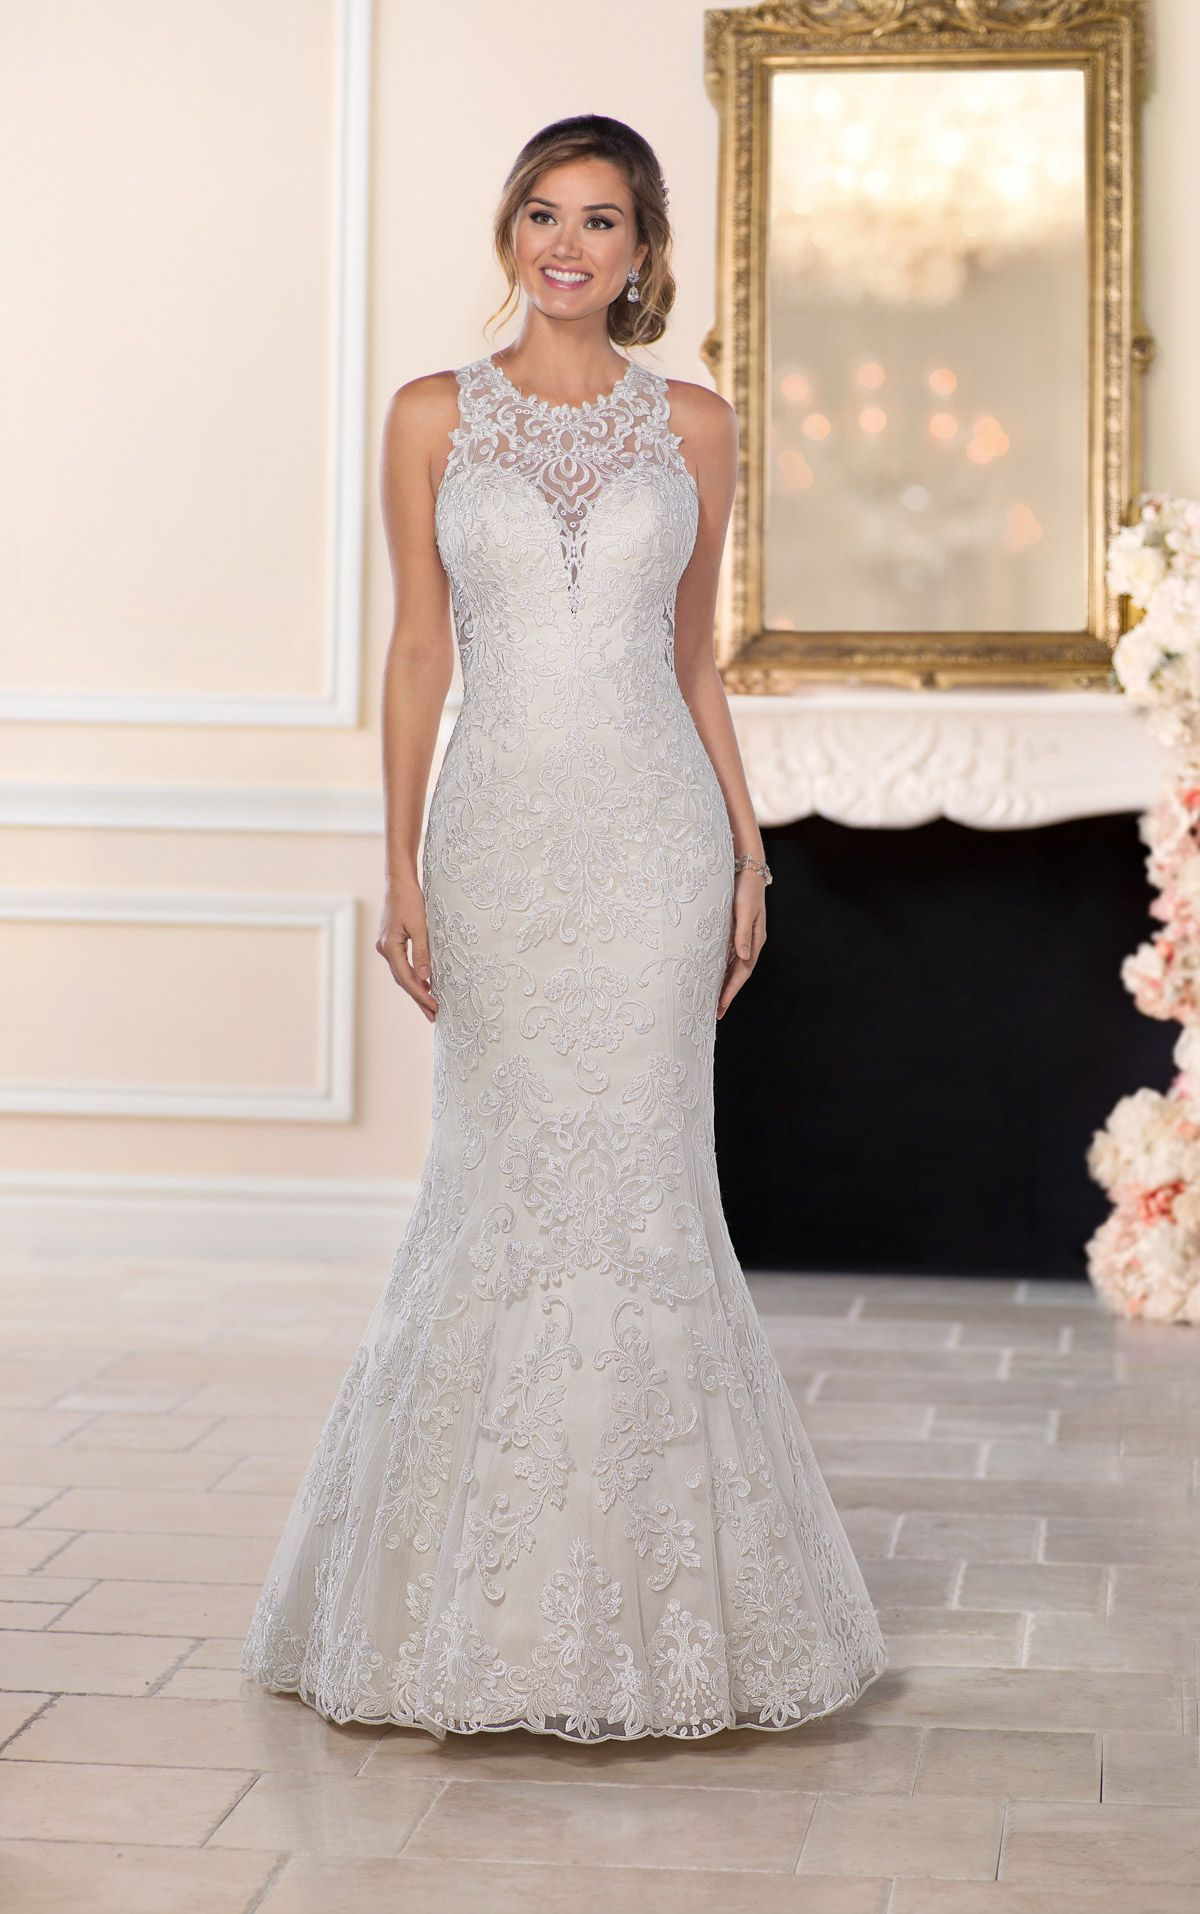 Mermaid wedding dresses with lace  Lace Wedding Dresses  Wedding Dresses I Love